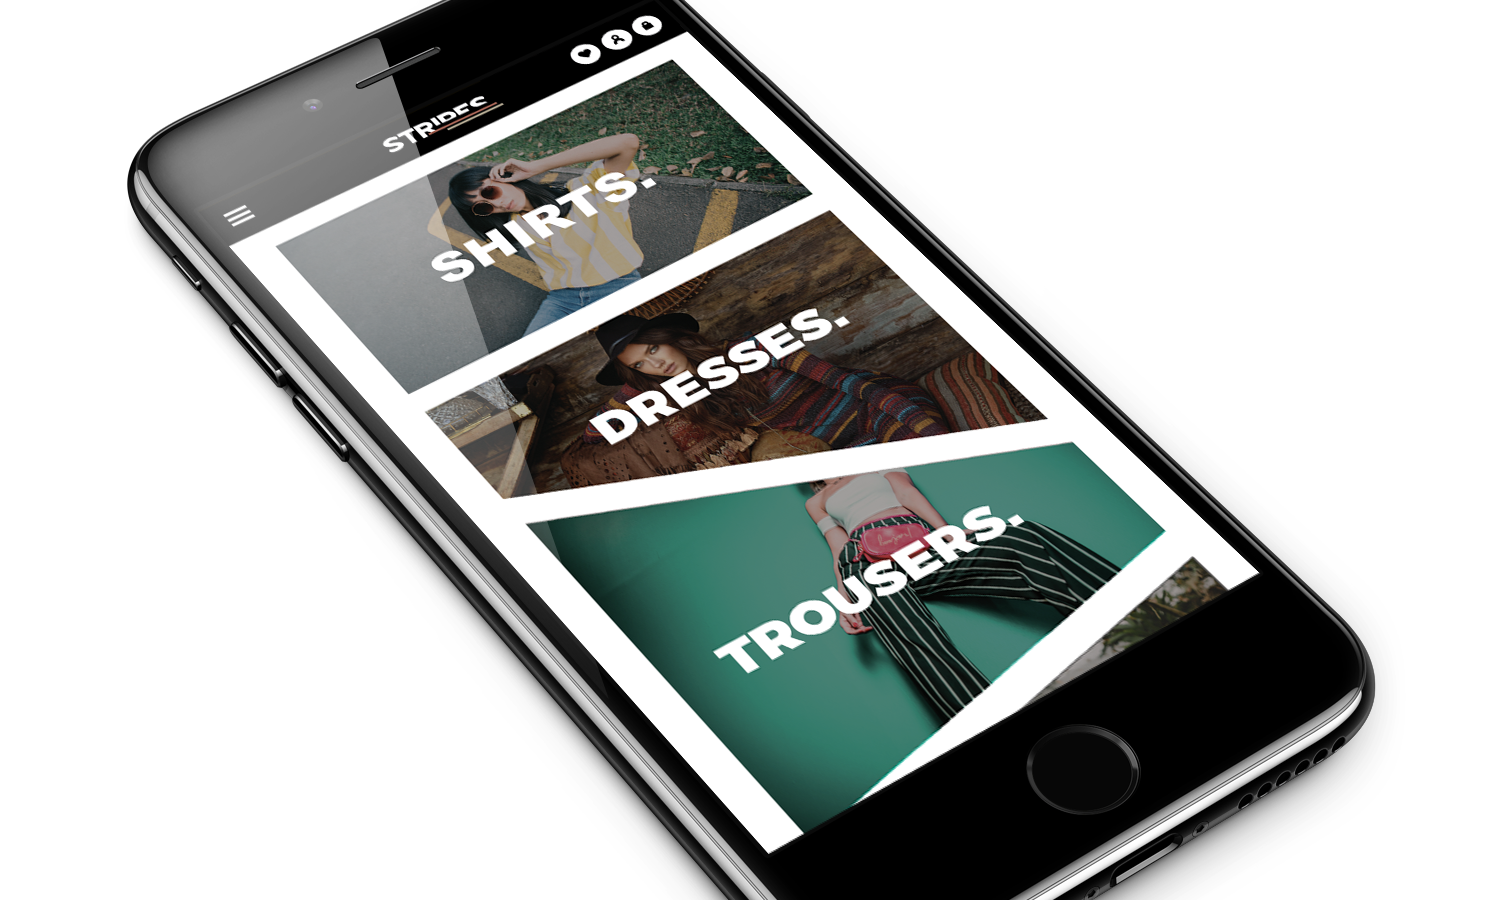 Mockup website for Stripe clothing company iPhone/mobile version